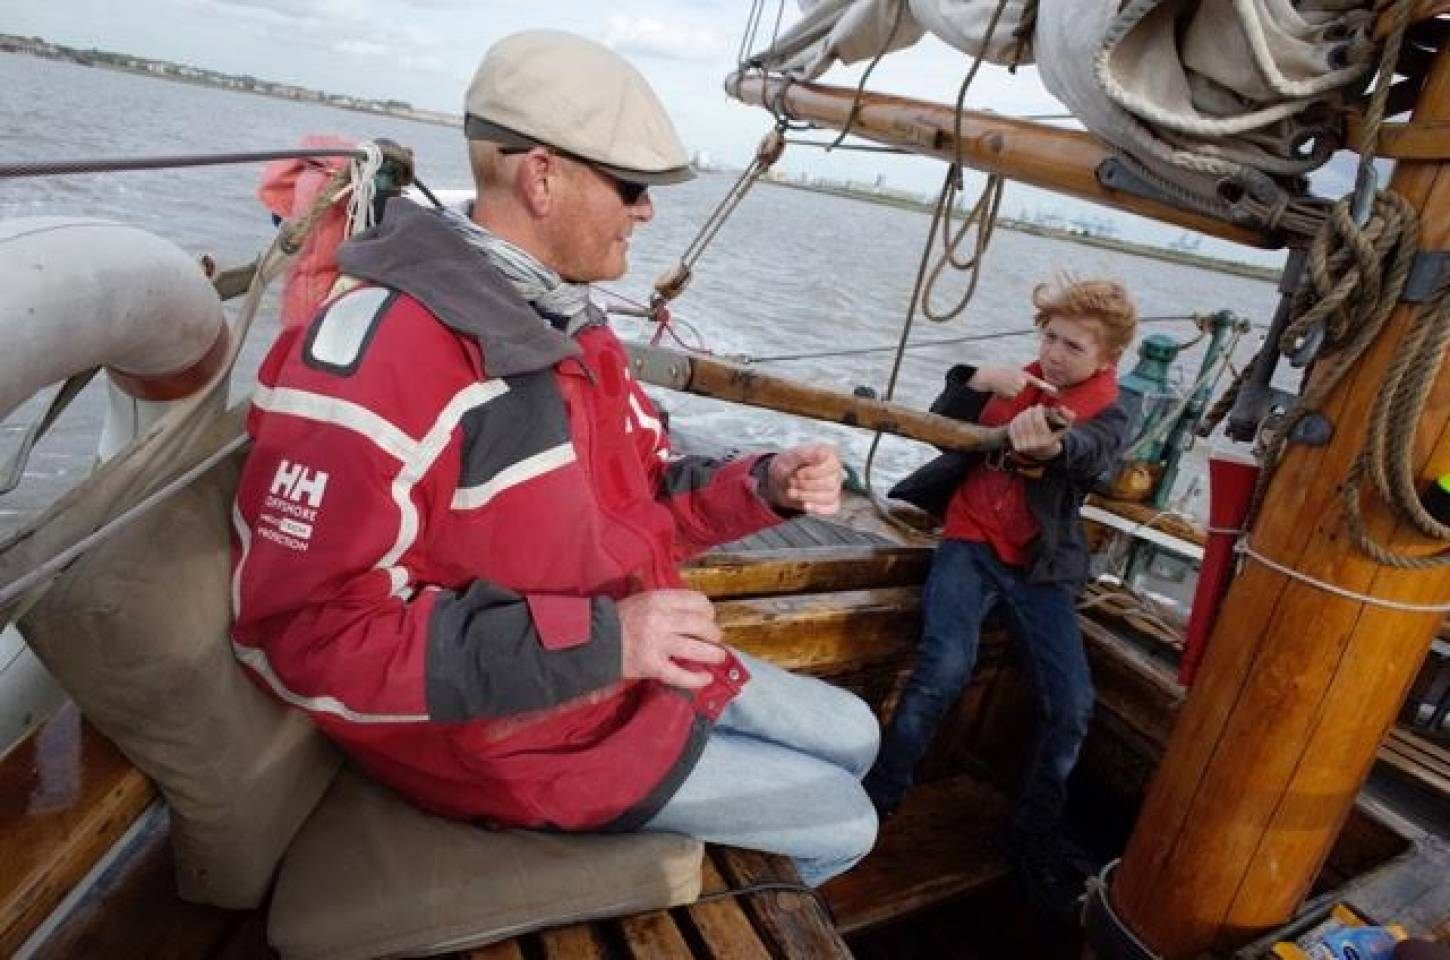 on Gravesend to Port of London leg of <a href='http://https://www.facebook.com/theseedjourney/' target='_blank'>Seed Journey</a> adventure aboard the <a href='http://www.classicboat.co.uk/articles/christiana-from-shipwreck-to-sailing/' target='_blank'>Christiana RS10</a> 1895 Norwegian Colin Archer rescue boat - very junior captain Josh takes helm